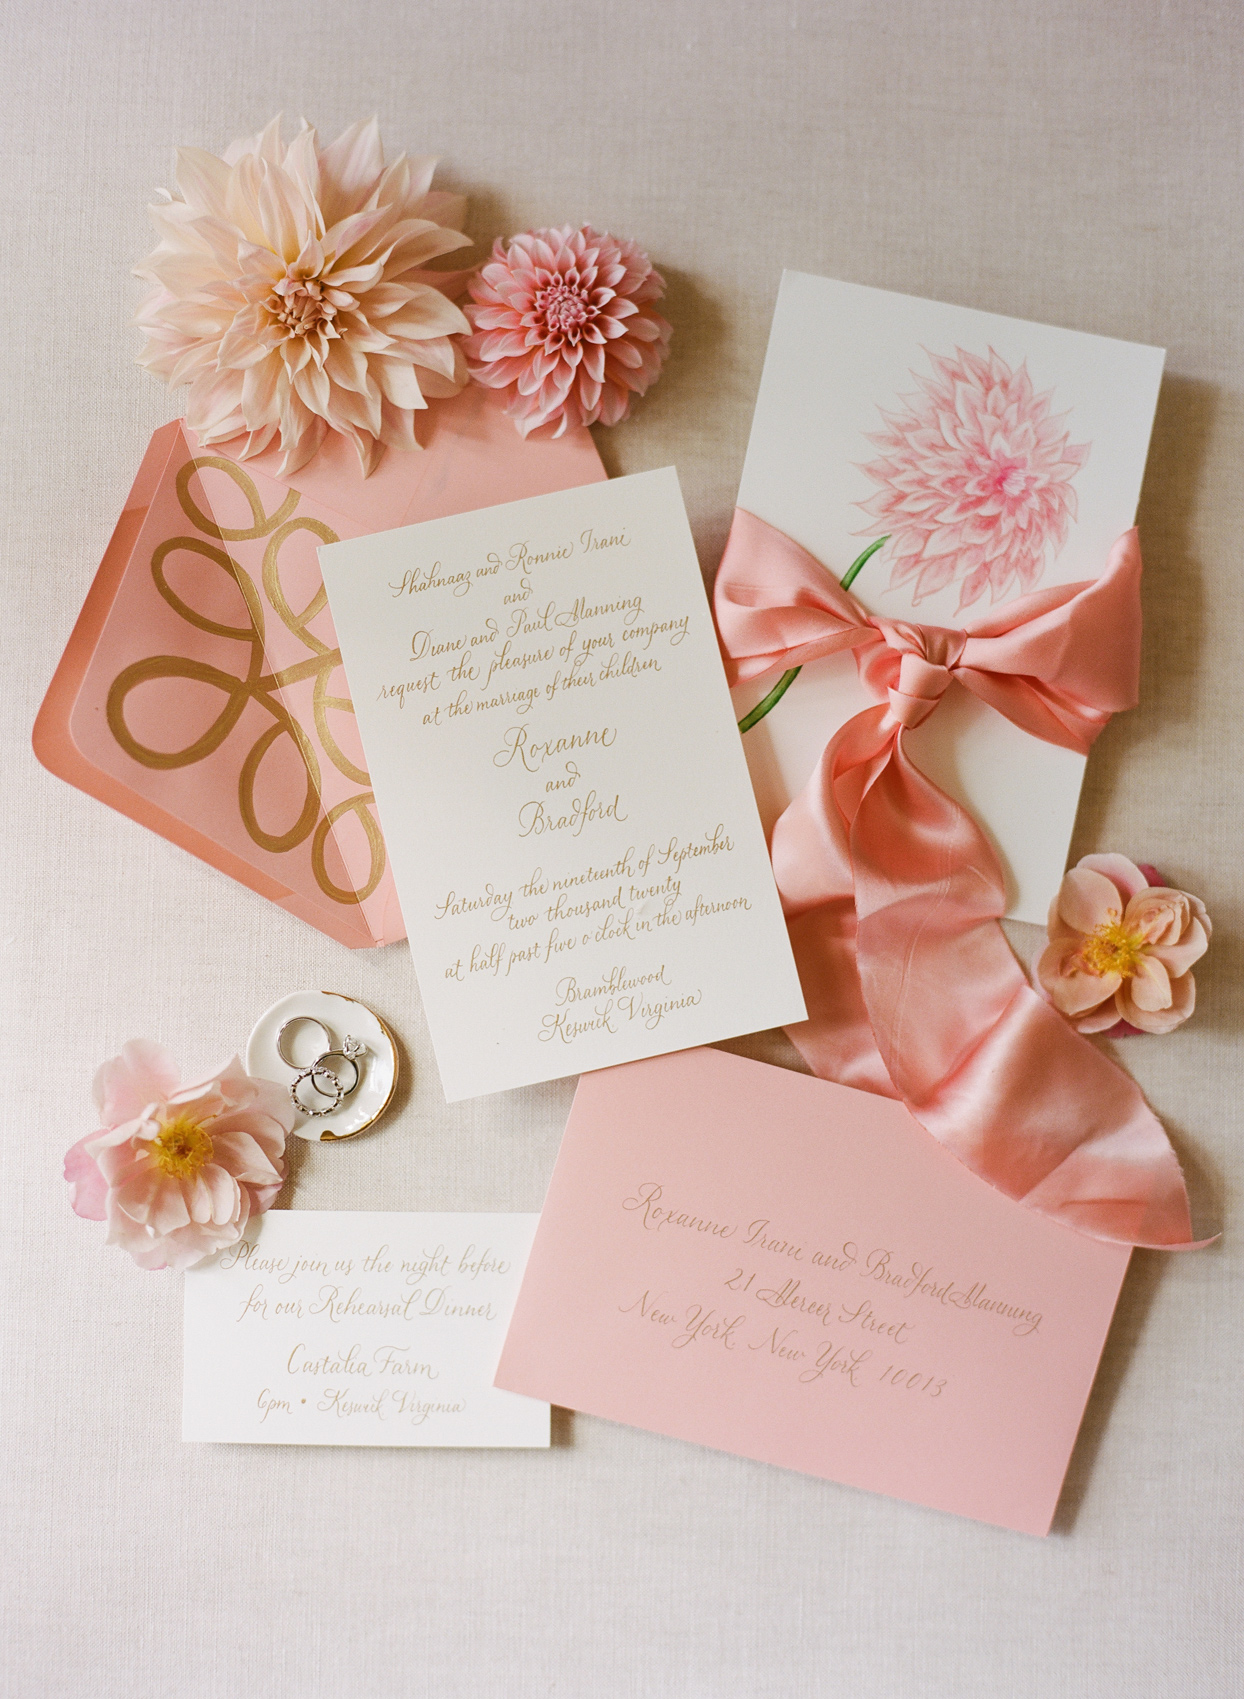 wedding suite with pink floral accents and wedding bands